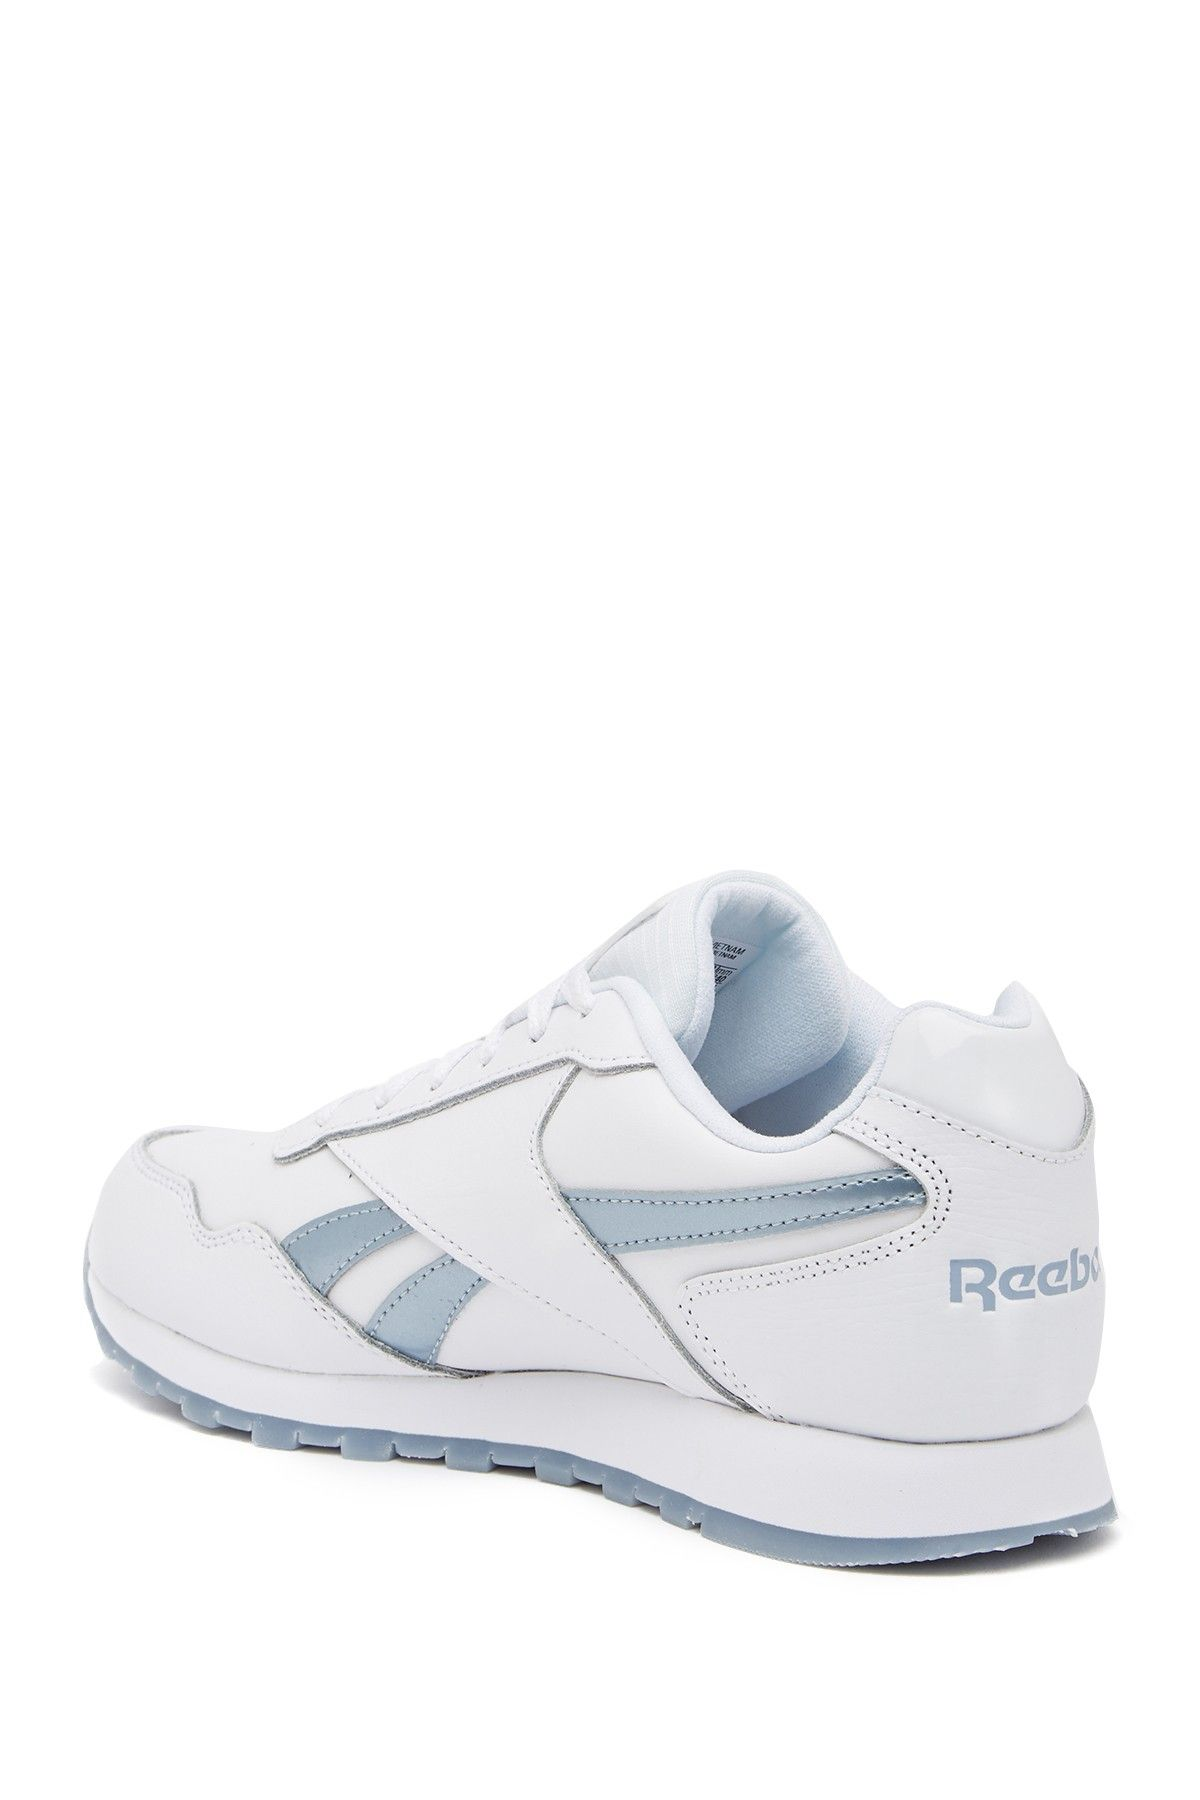 1e60a7ccb62 Reebok - Classic Harman Run Sneaker is now 7% off. Free Shipping on orders  over  100.